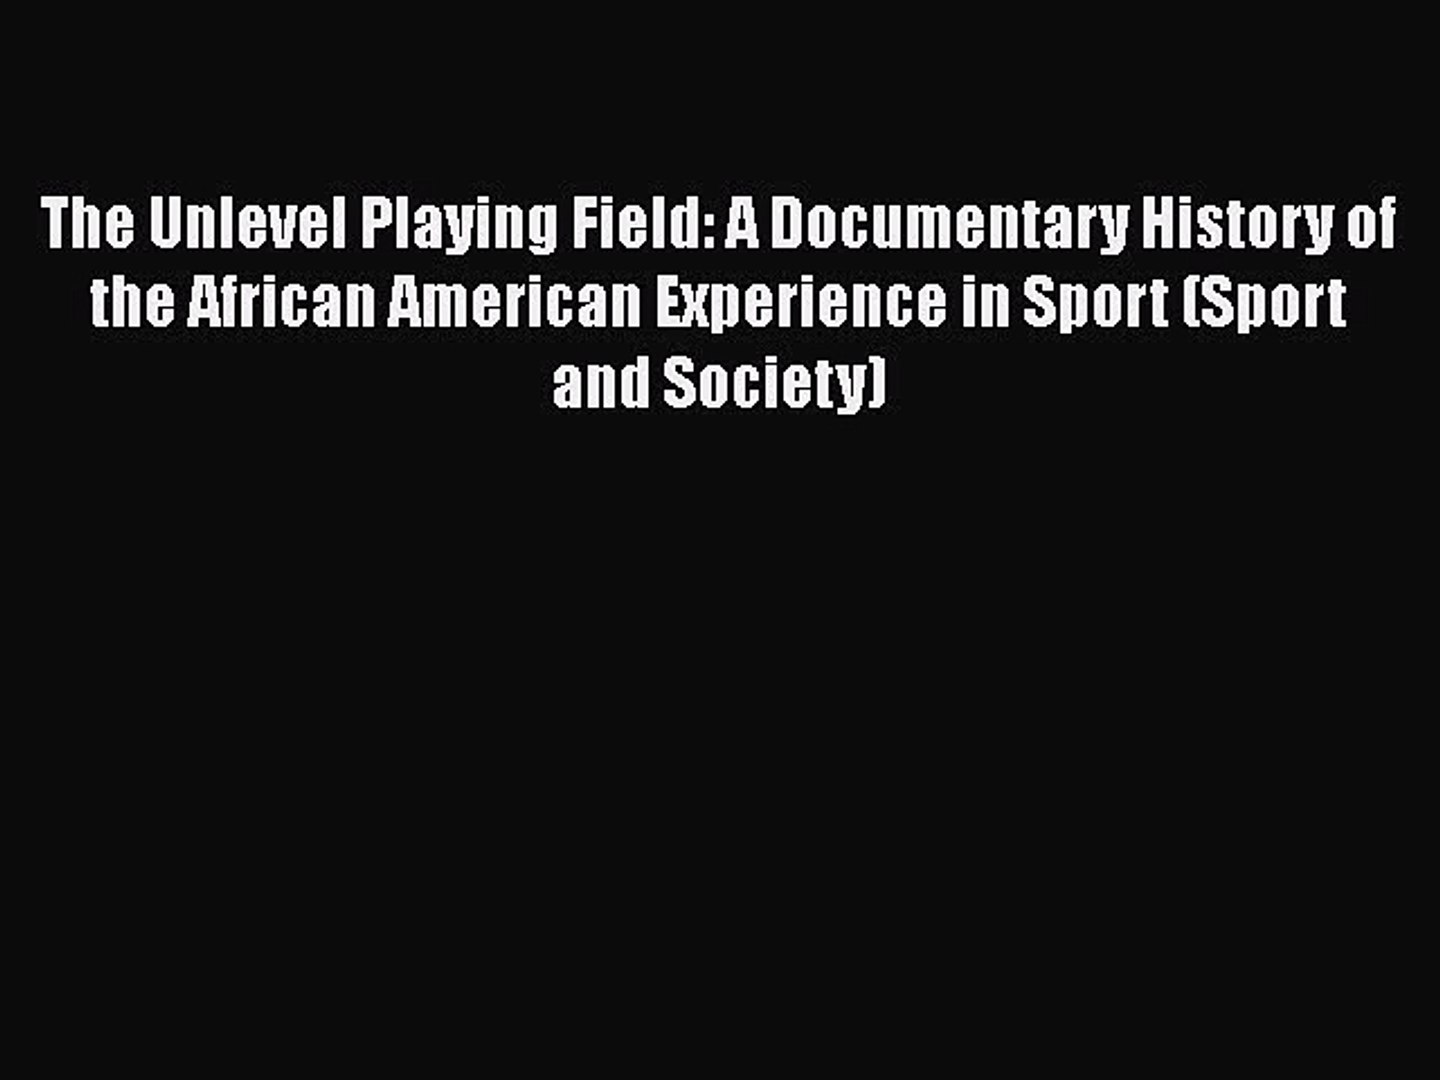 Read The Unlevel Playing Field: A Documentary History of the African American Experience in